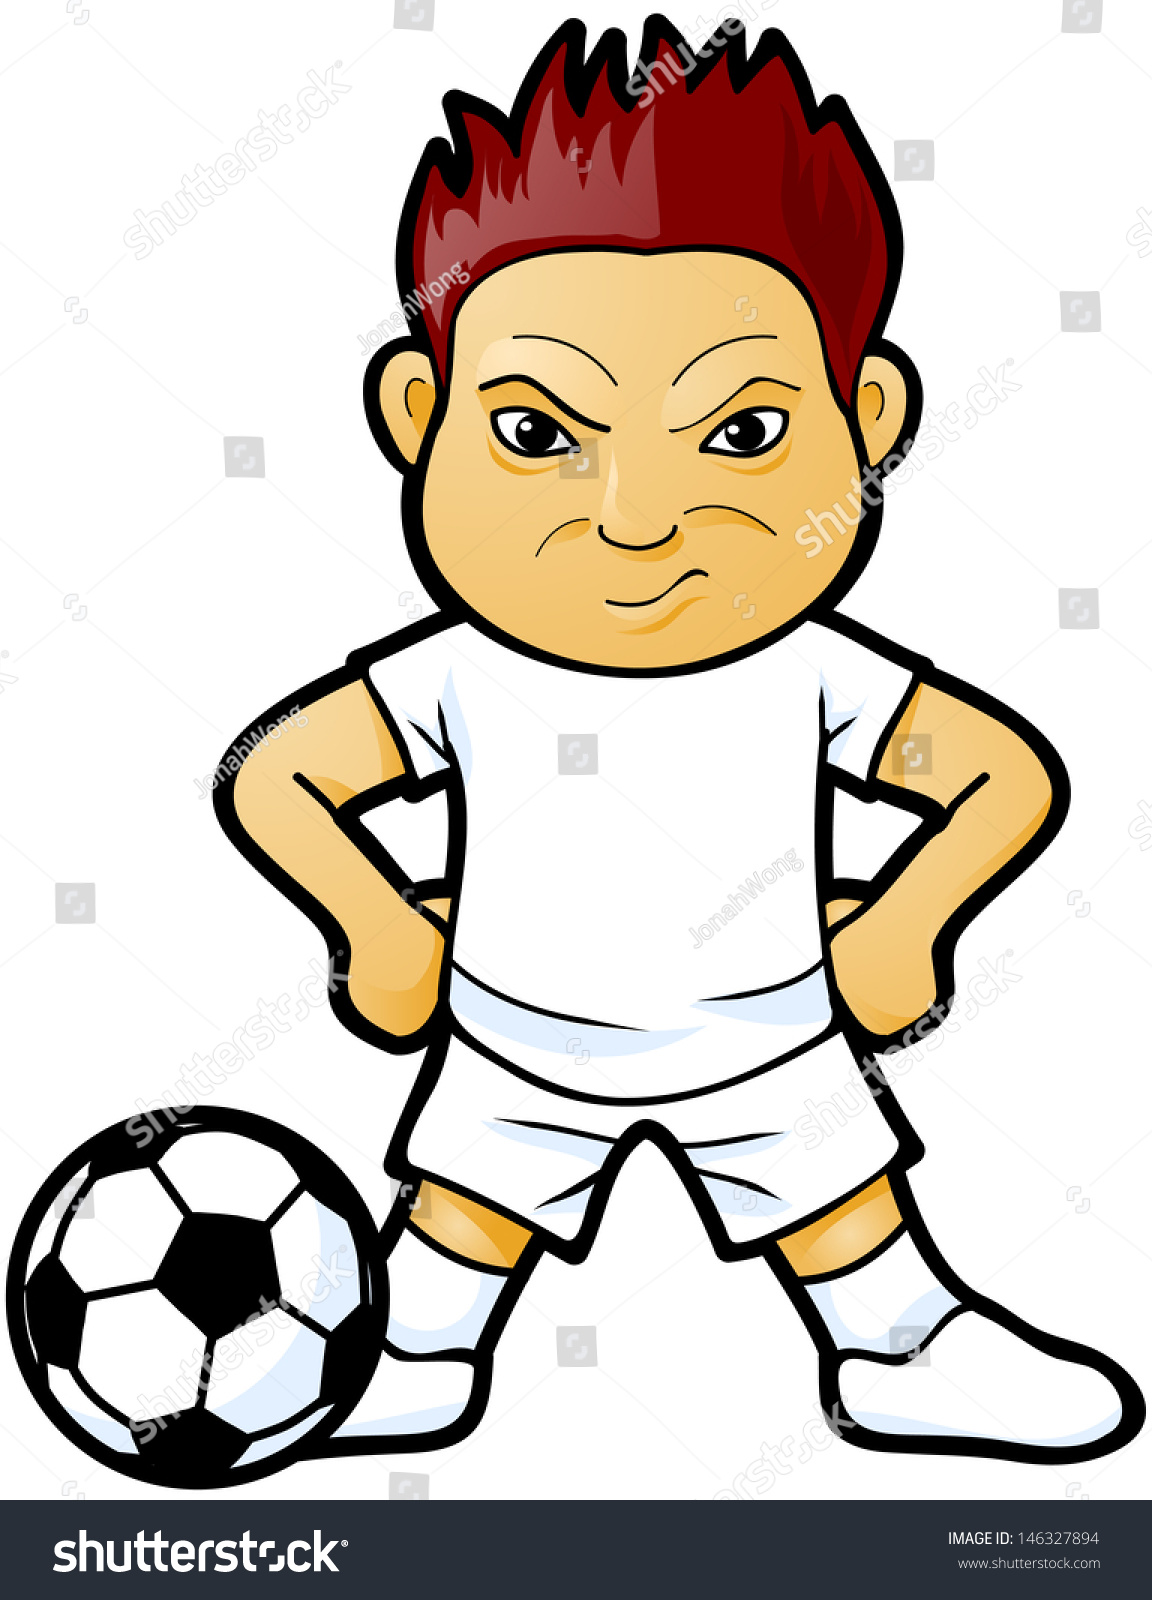 Soccer Player Cartoon Stock Vector 146327894